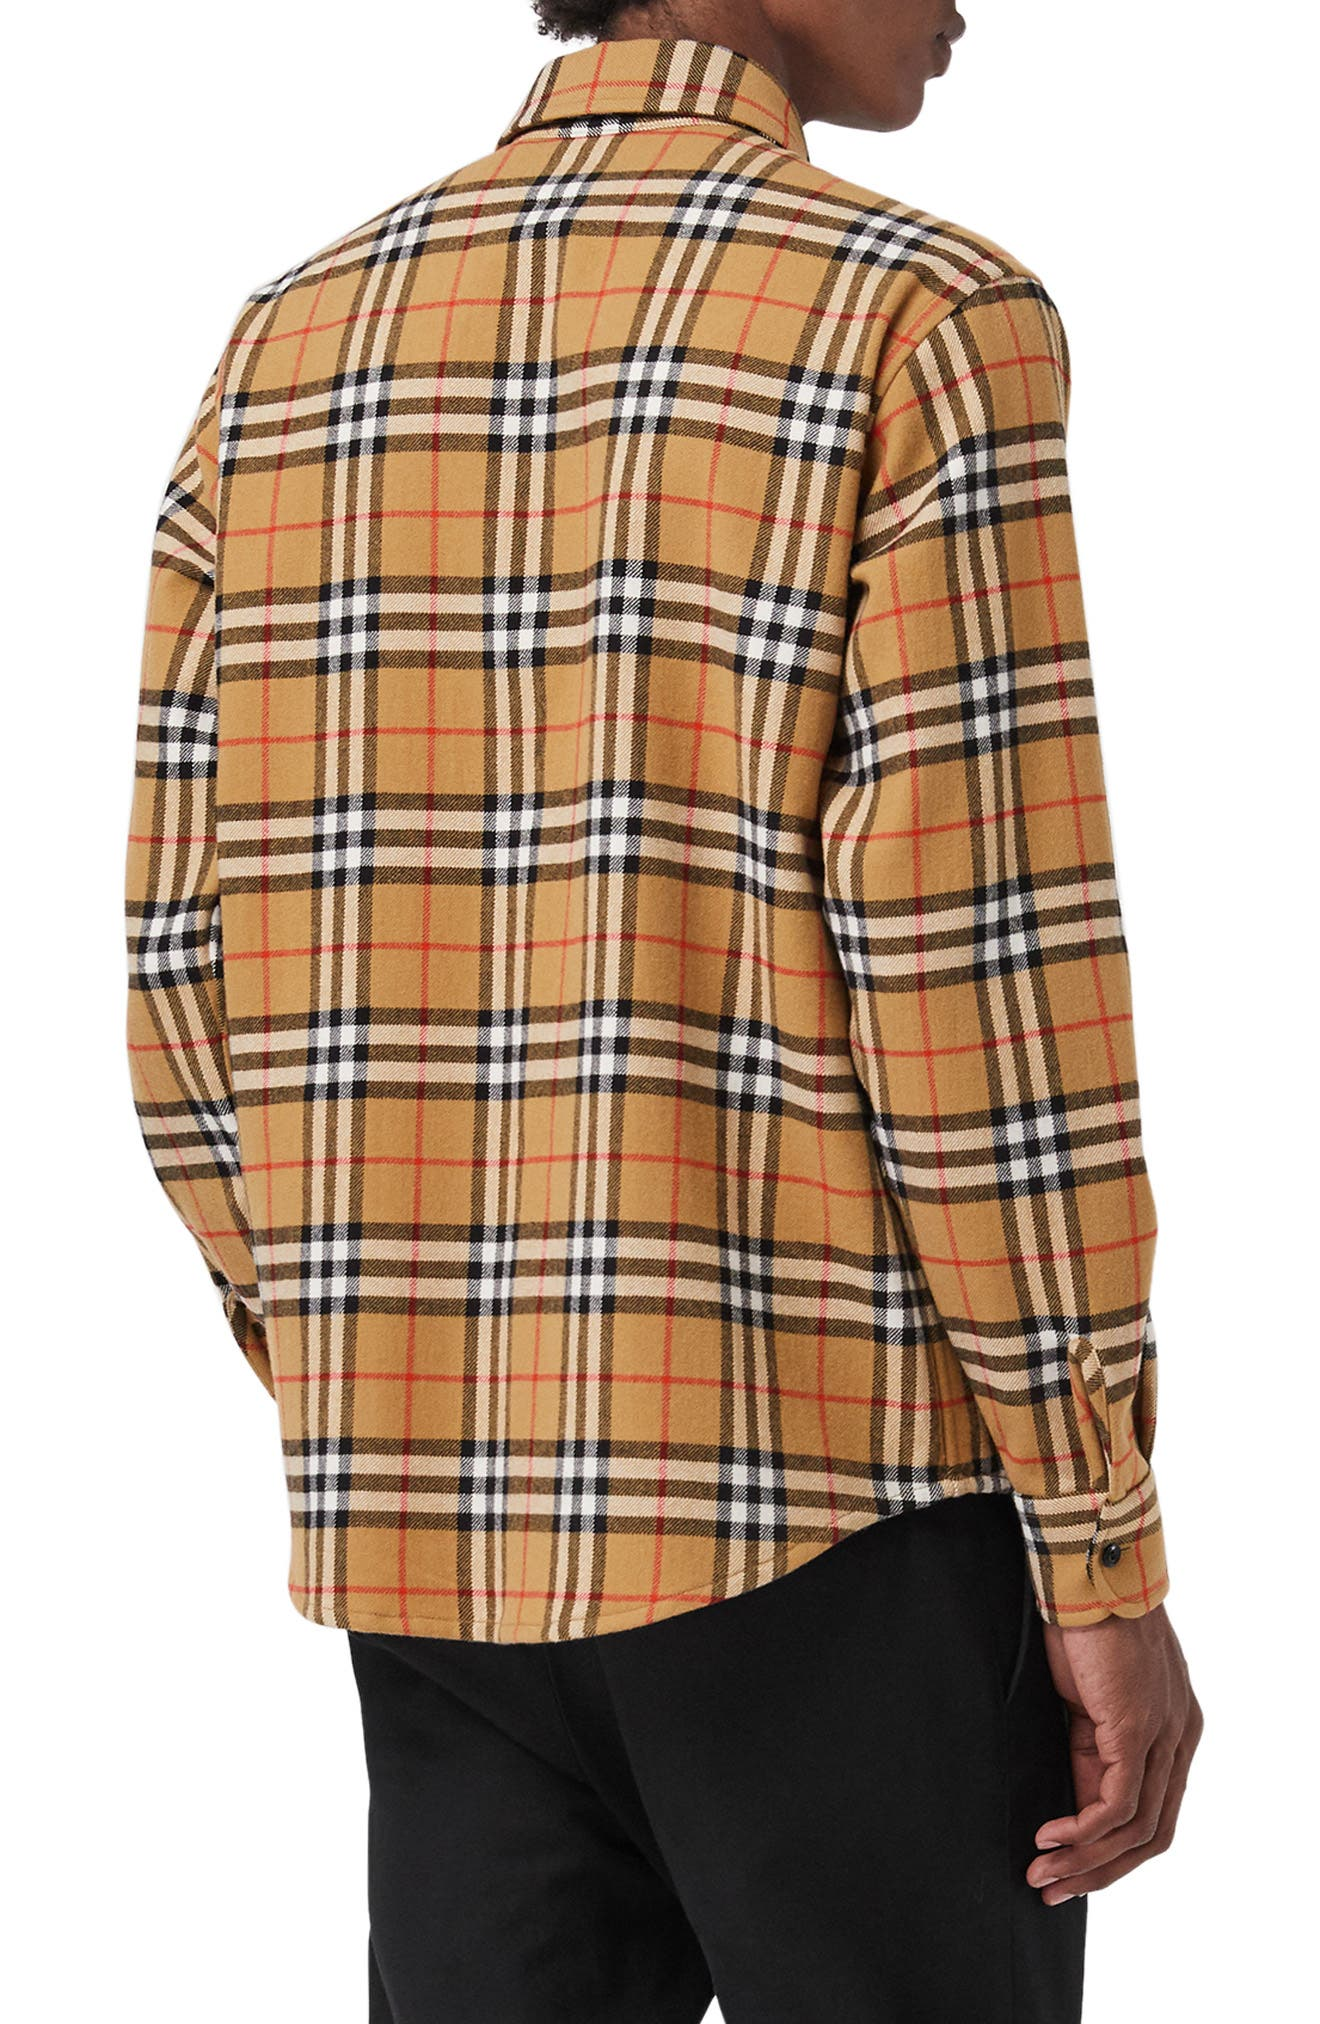 Lyndhurst Check Flannel Shirt,                             Alternate thumbnail 4, color,                             ANTIQUE YEL IP CHK